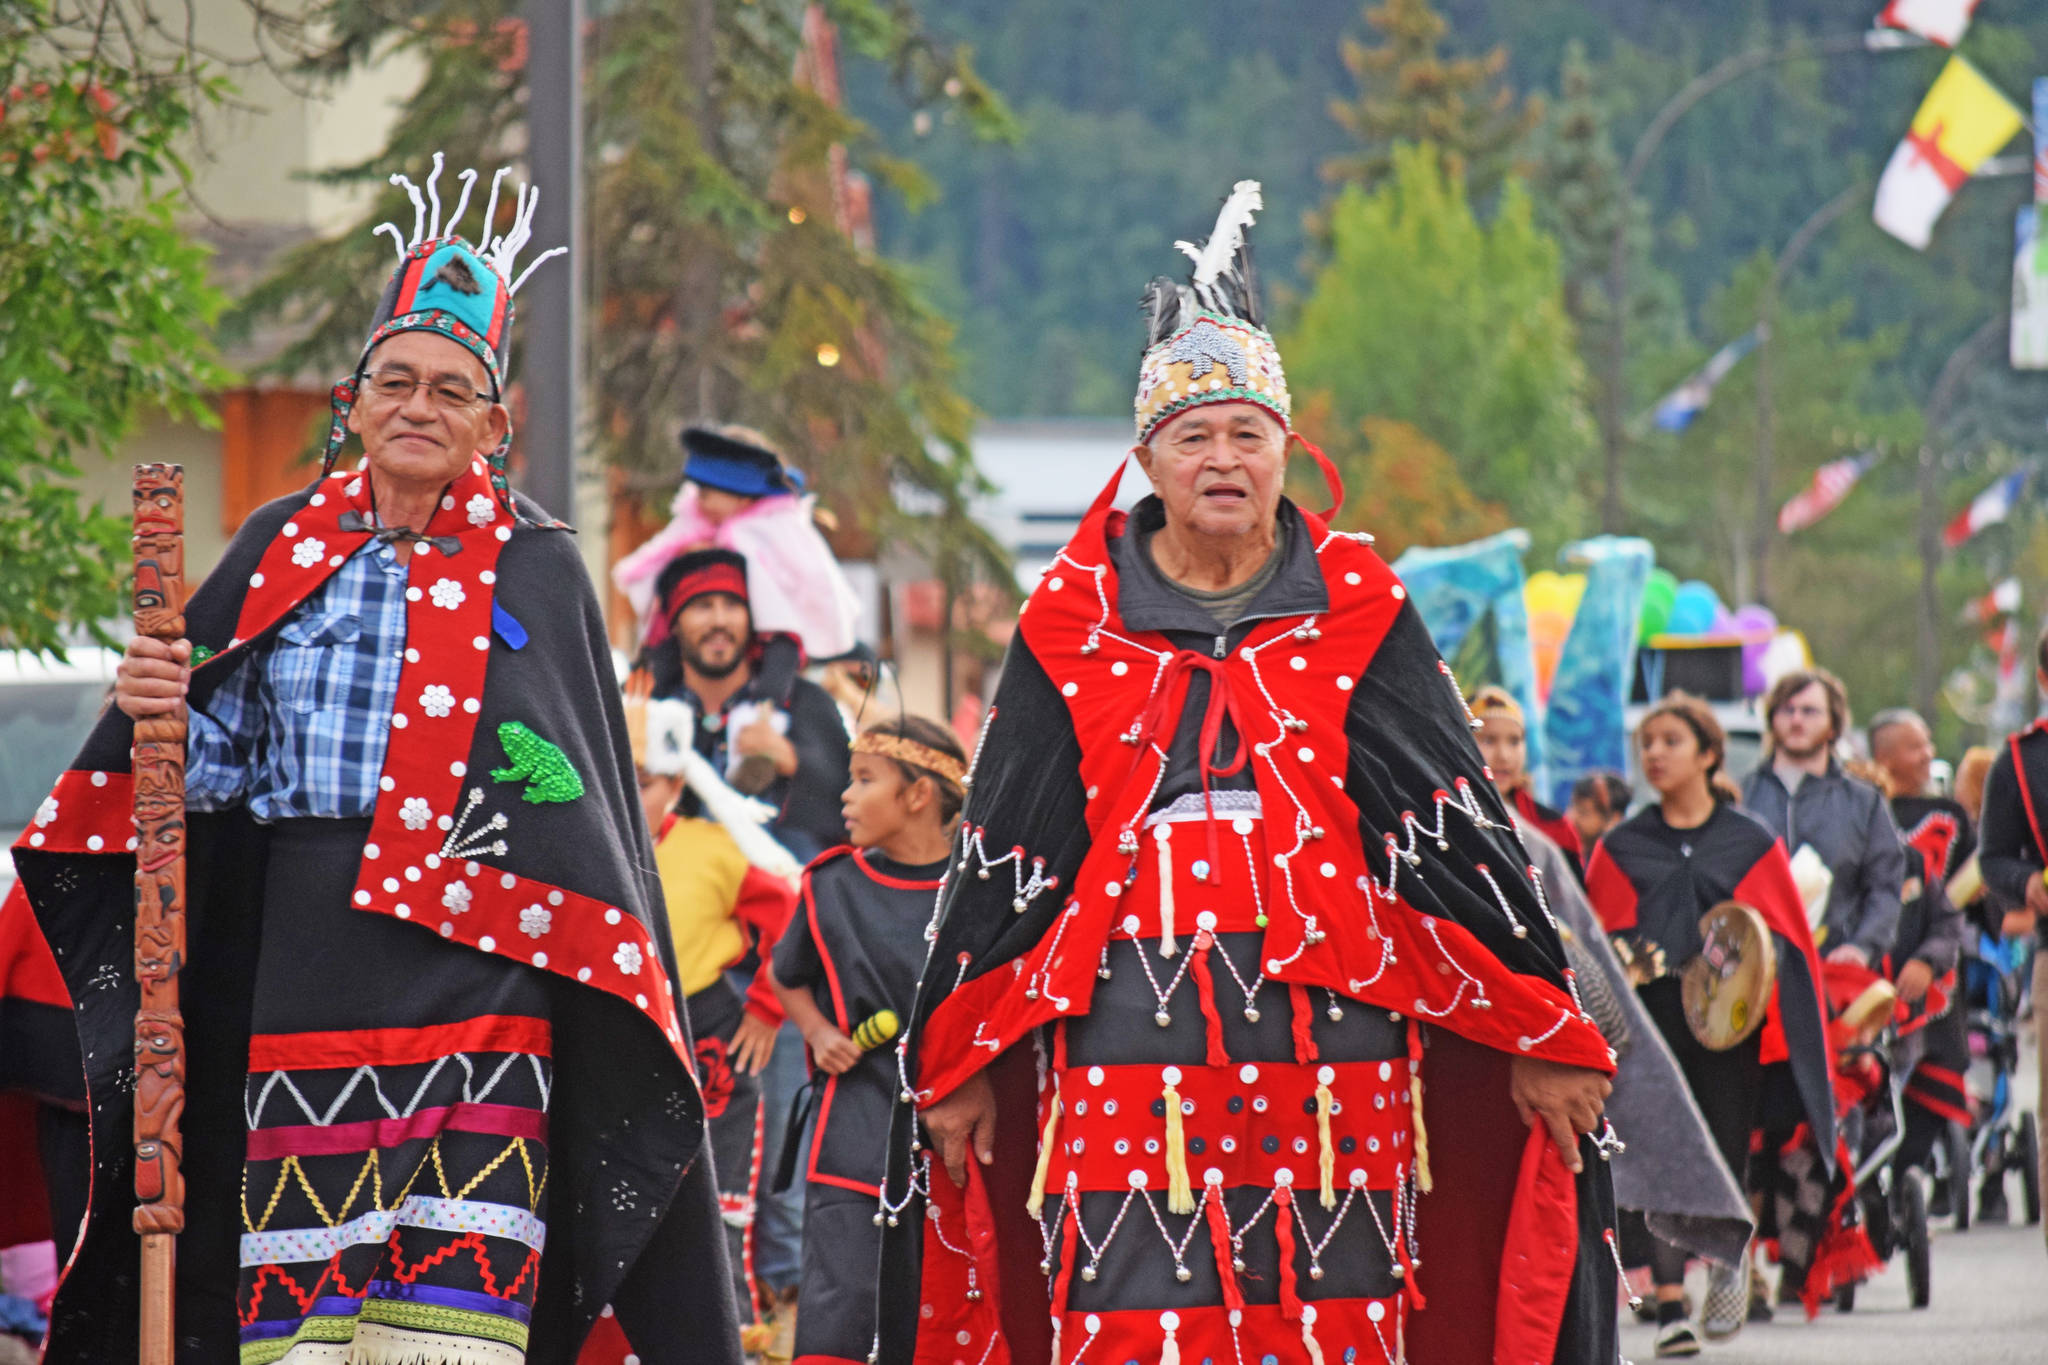 """Wet'suwet'en Hereditary Chief Na'Moks (Left) and Wet'suwet'en Hereditary leader of the Gidmt'en clan Chief Madeek (right) at the annual fall fair parade in Smithers. In an Oct. 4 press release the hereditary chiefs demanded that a cease-and-desist order be immediately issued to Coastal GasLink's pipeline project due to their claims of """"ongoing destruction of Wet'suwet'en cultural heritage and archaeological sites, and non-compliance with Wet'suwet'en and BC Provincial law."""" (Trevor Hewitt photo)"""